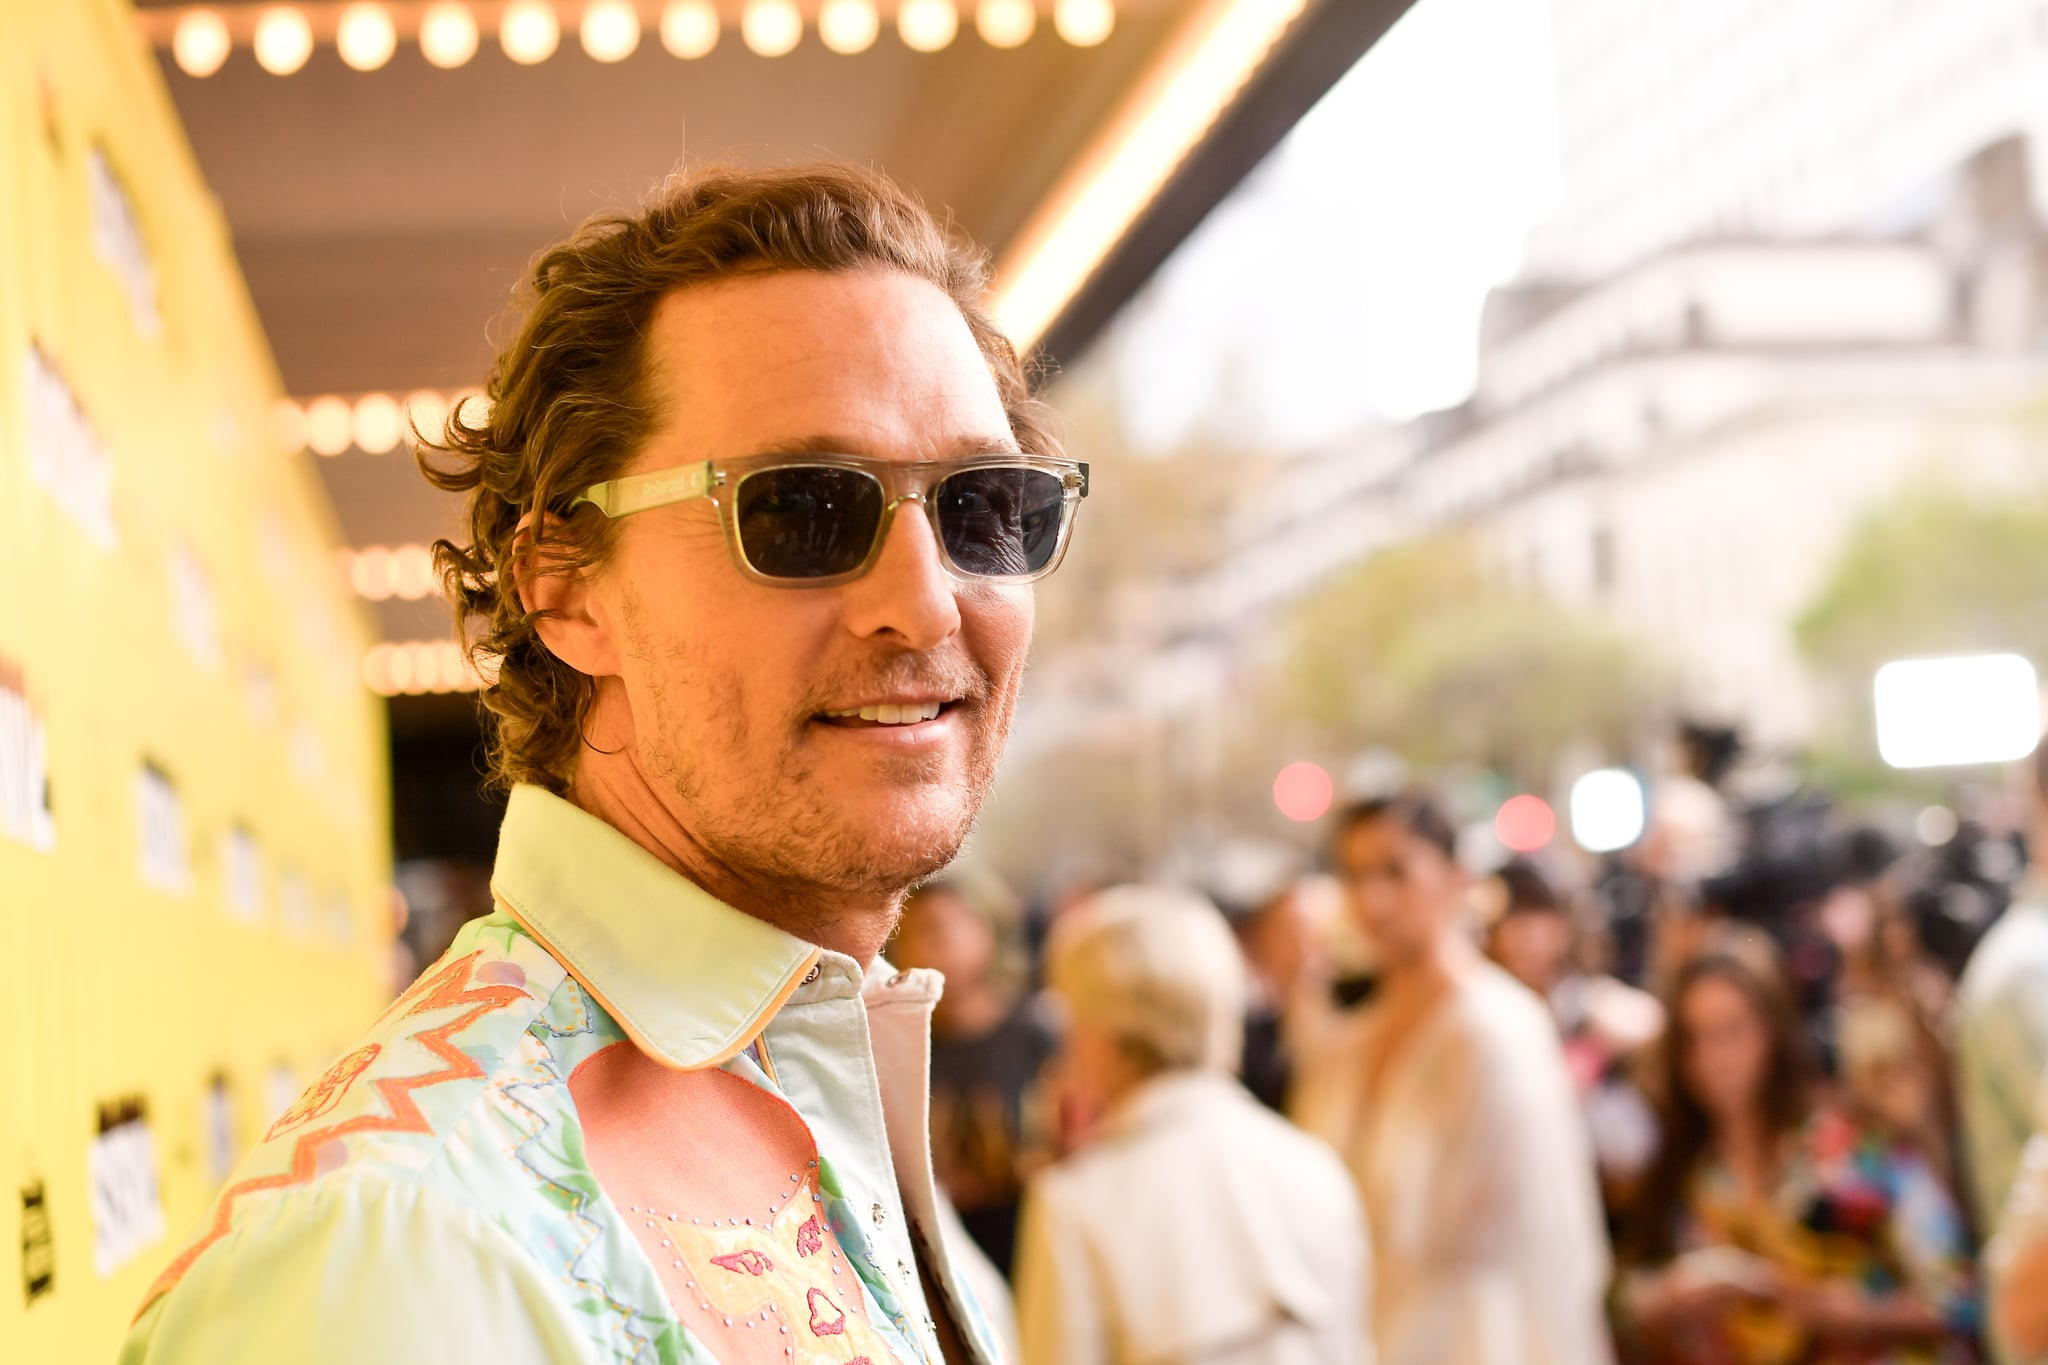 AUSTIN, TEXAS - MARCH 09: Matthew McConaughey attends the